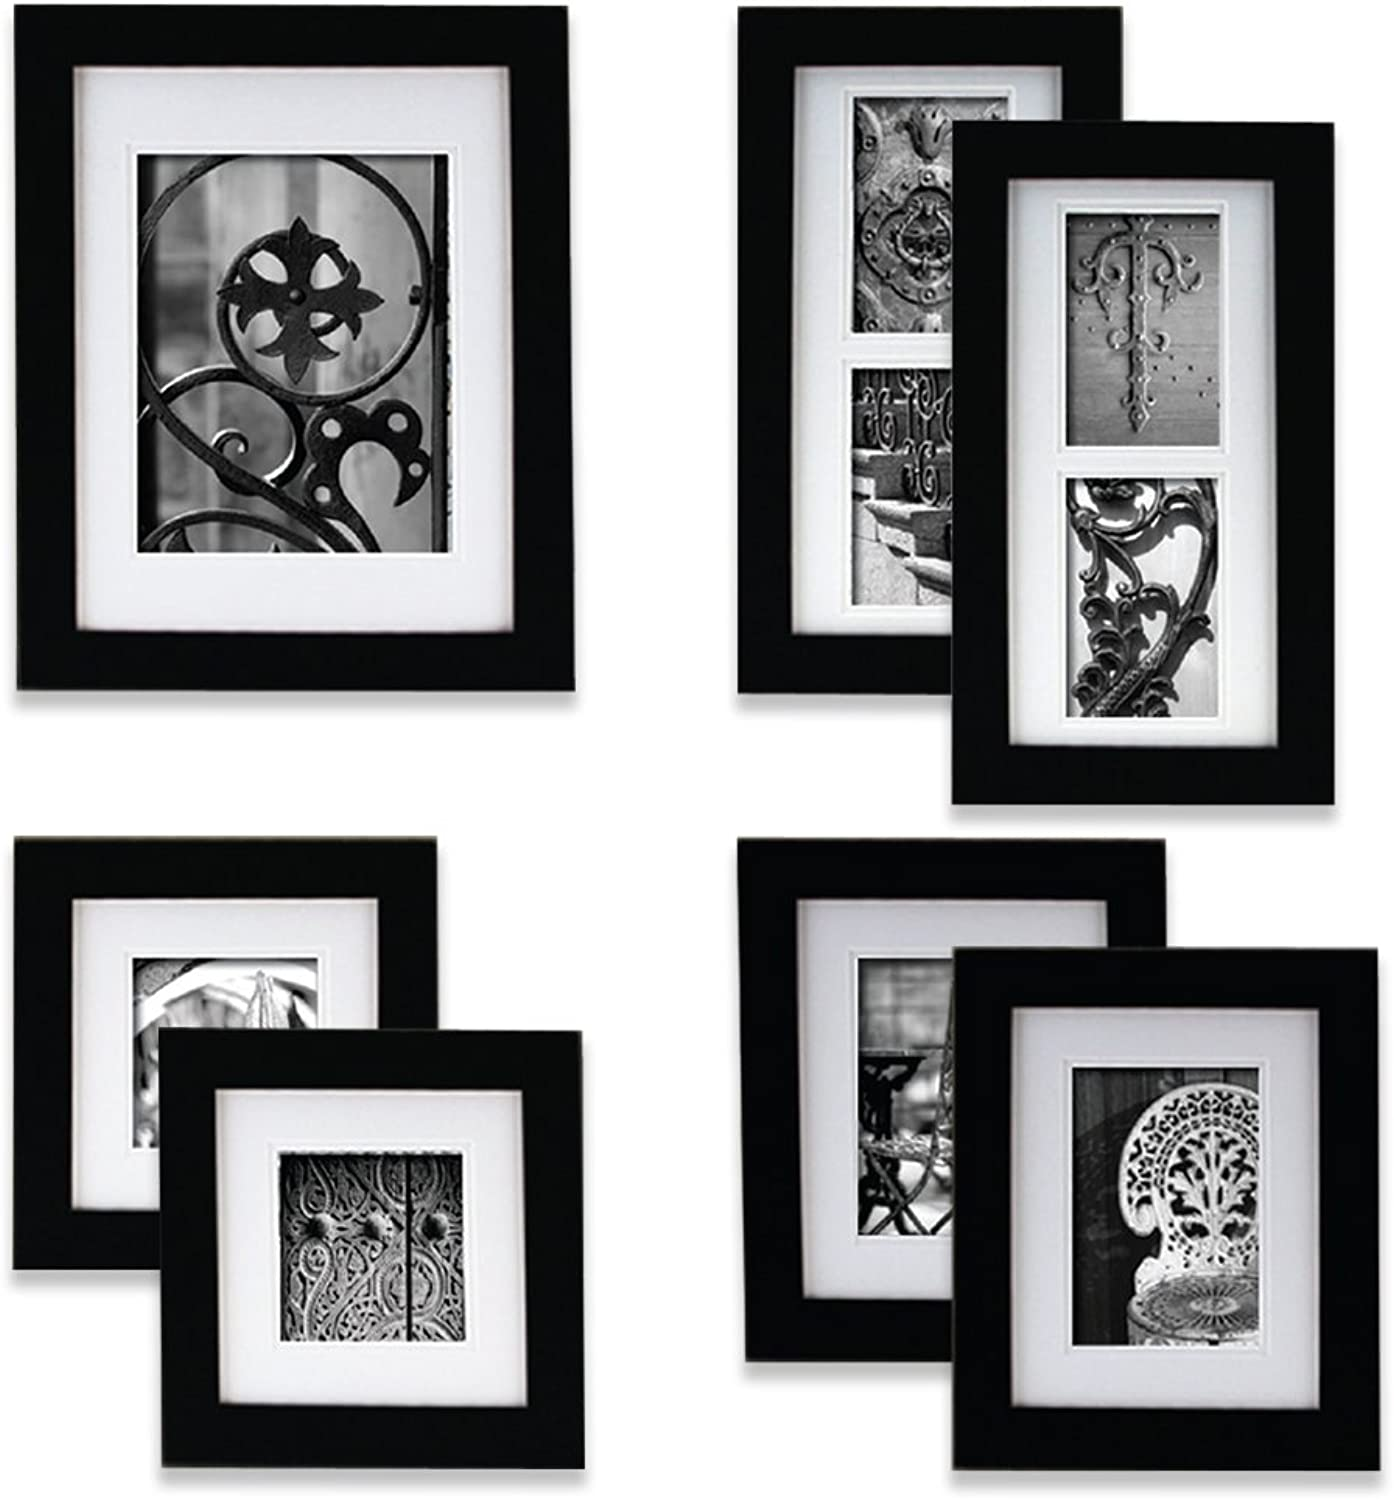 Gallery Perfect 7 Piece Black Wood Photo Frame Wall Gallery Kit. Includes  Frames, Hanging Wall Template, Decorative Art Prints and Hanging Hardware